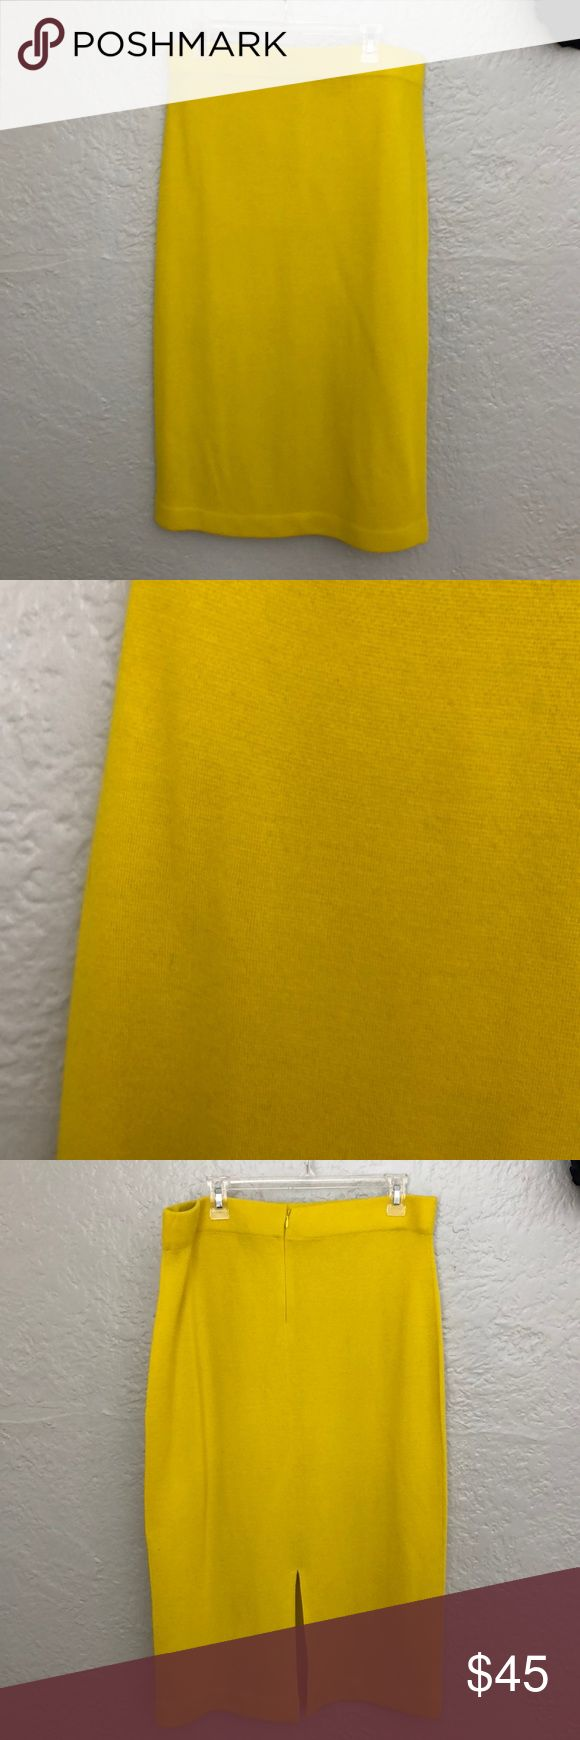 """J. Crew yellow sweater skirt Worn once. 100% wool. Zipper in the back. There is no lining. Gorgeous bright color and warm. It is just a bit more fitted than I normally wear. No imperfections.  Waist 36"""" Length 33"""" Hips 42"""" J. Crew Skirts Pencil"""